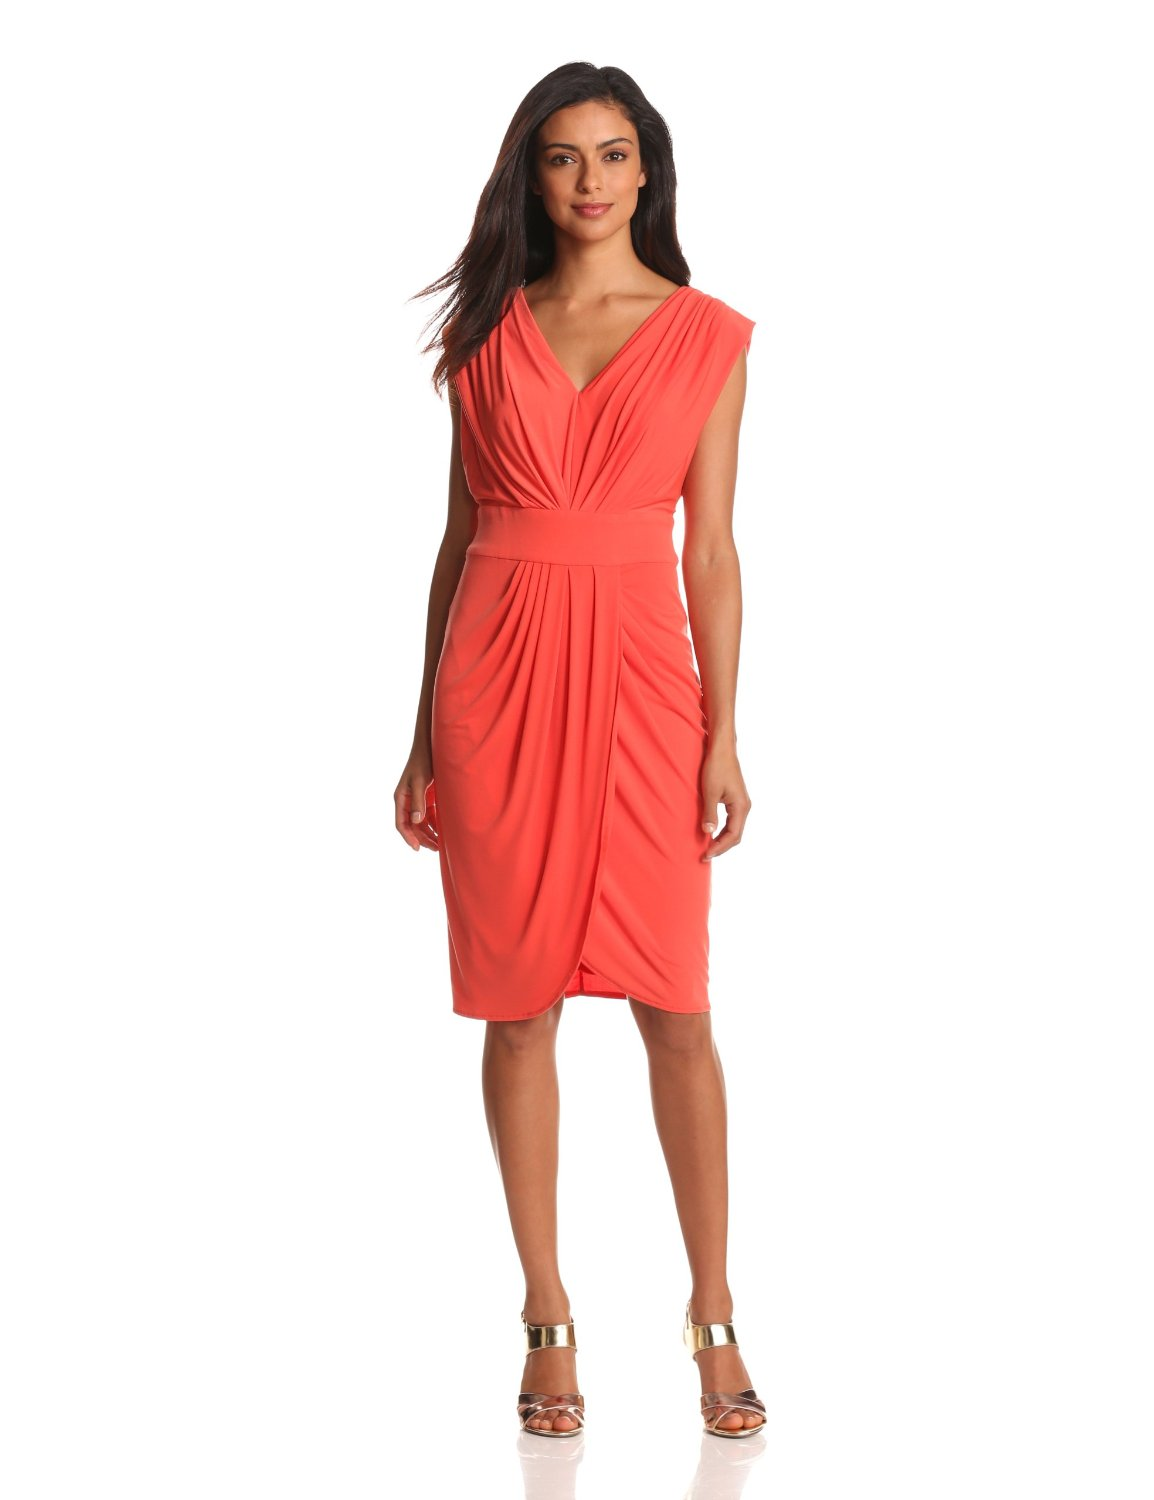 Christmas dresses for women - Faux Wrap Dress Dressed Up Girl